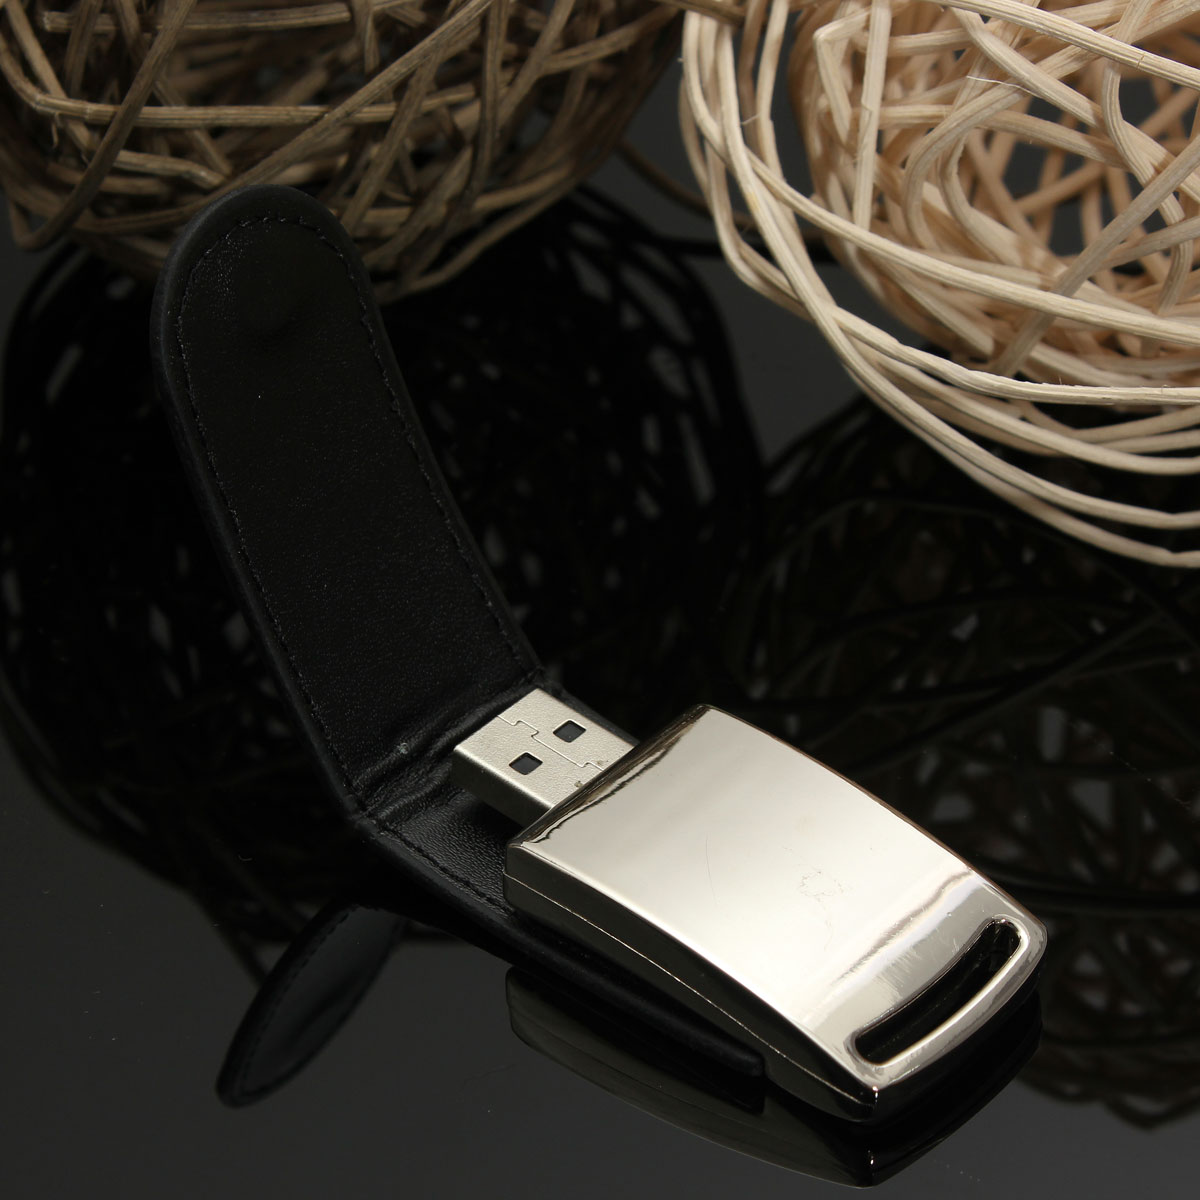 32GB Mini Leather Metal Silver USB 2.0 Flash Stick Memory Drive Pen Storage